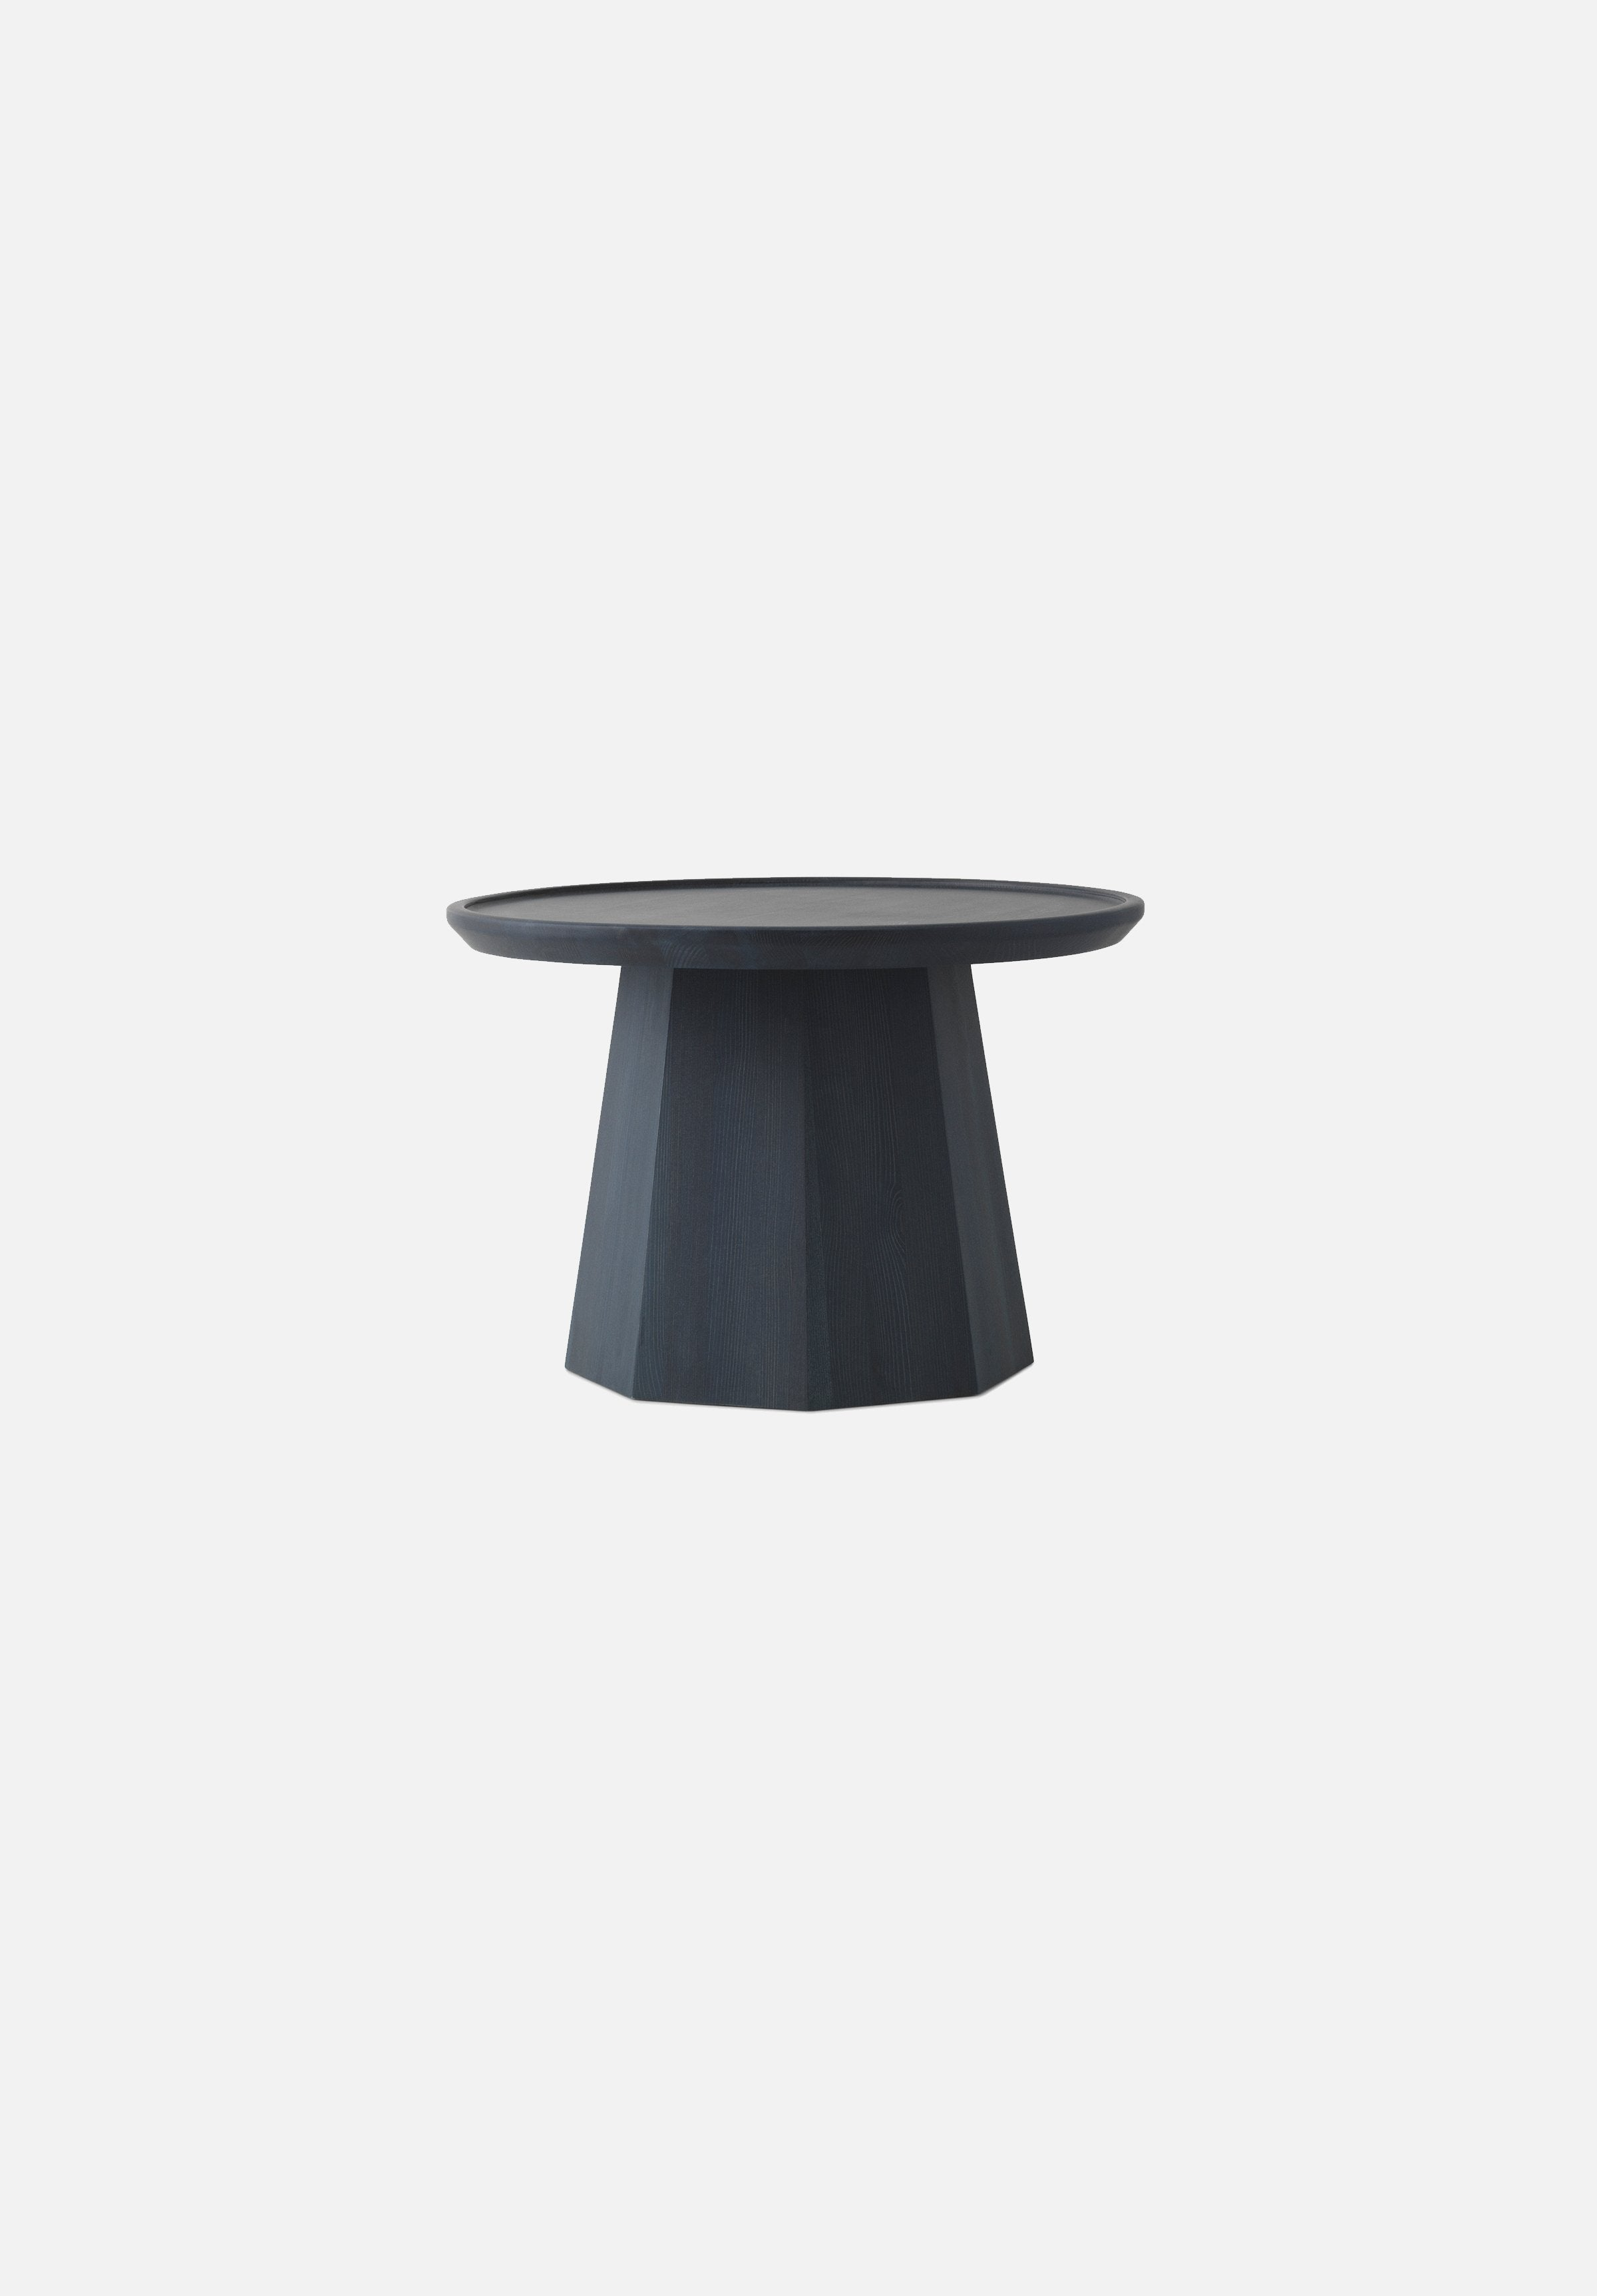 Pine Table-Simon Legald-Normann Copenhagen-navy blue-Large-Average-canada-design-store-danish-denmark-furniture-interior